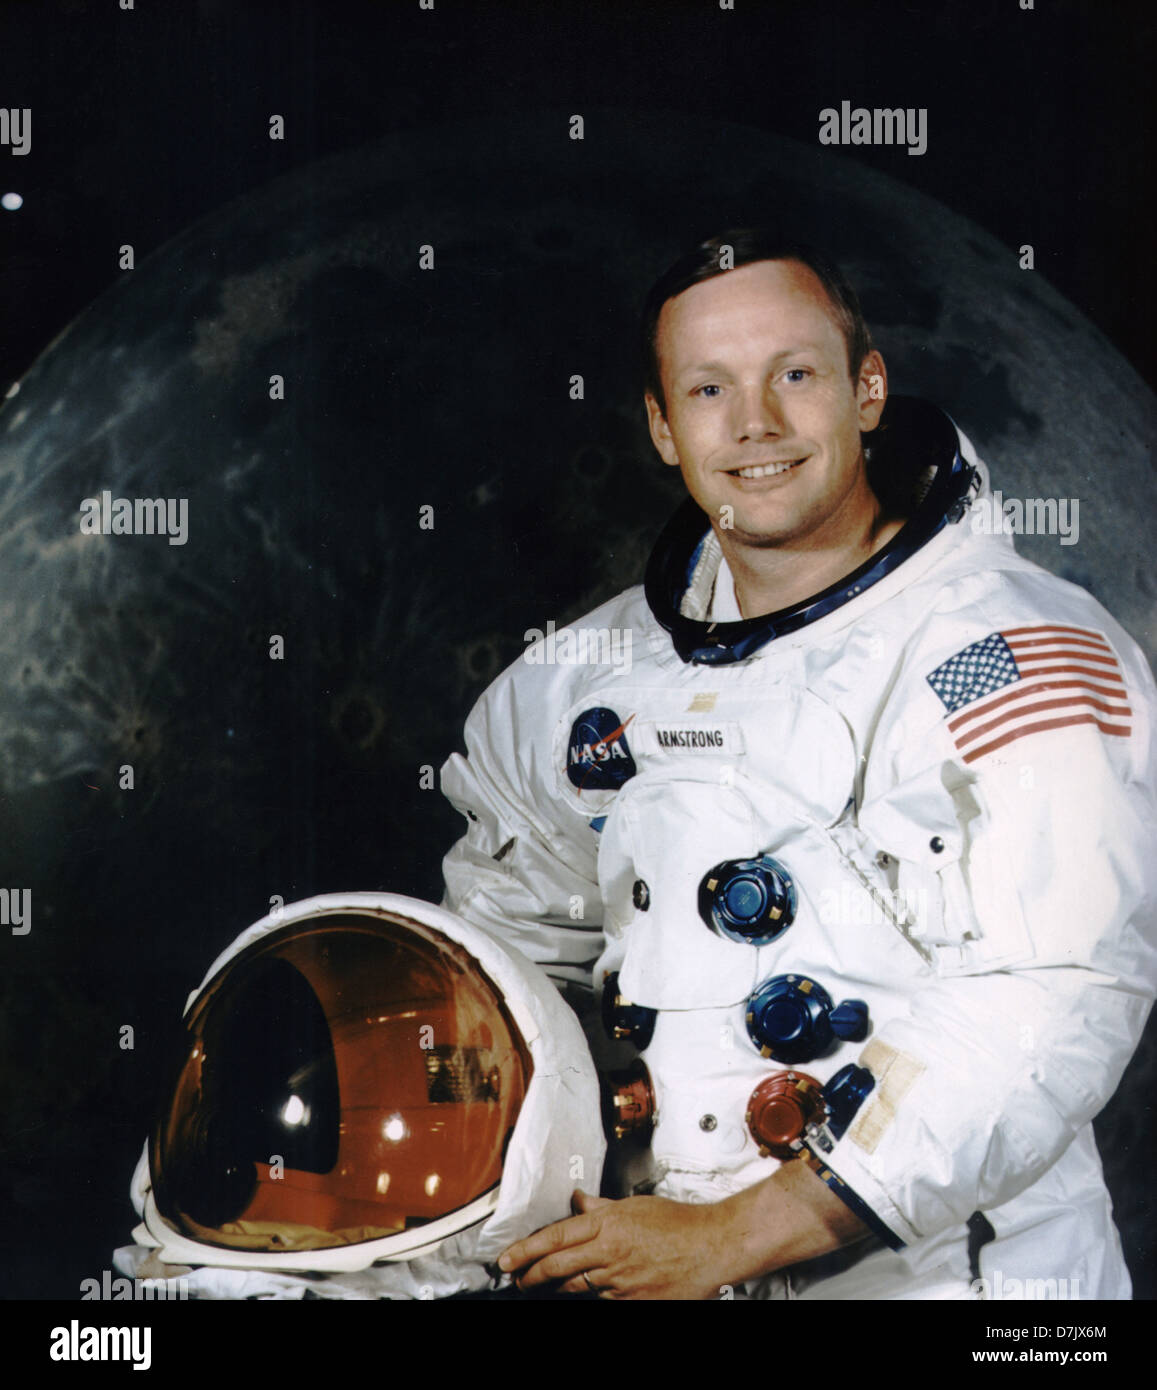 Astronaut Neil Armstrong Stockfoto